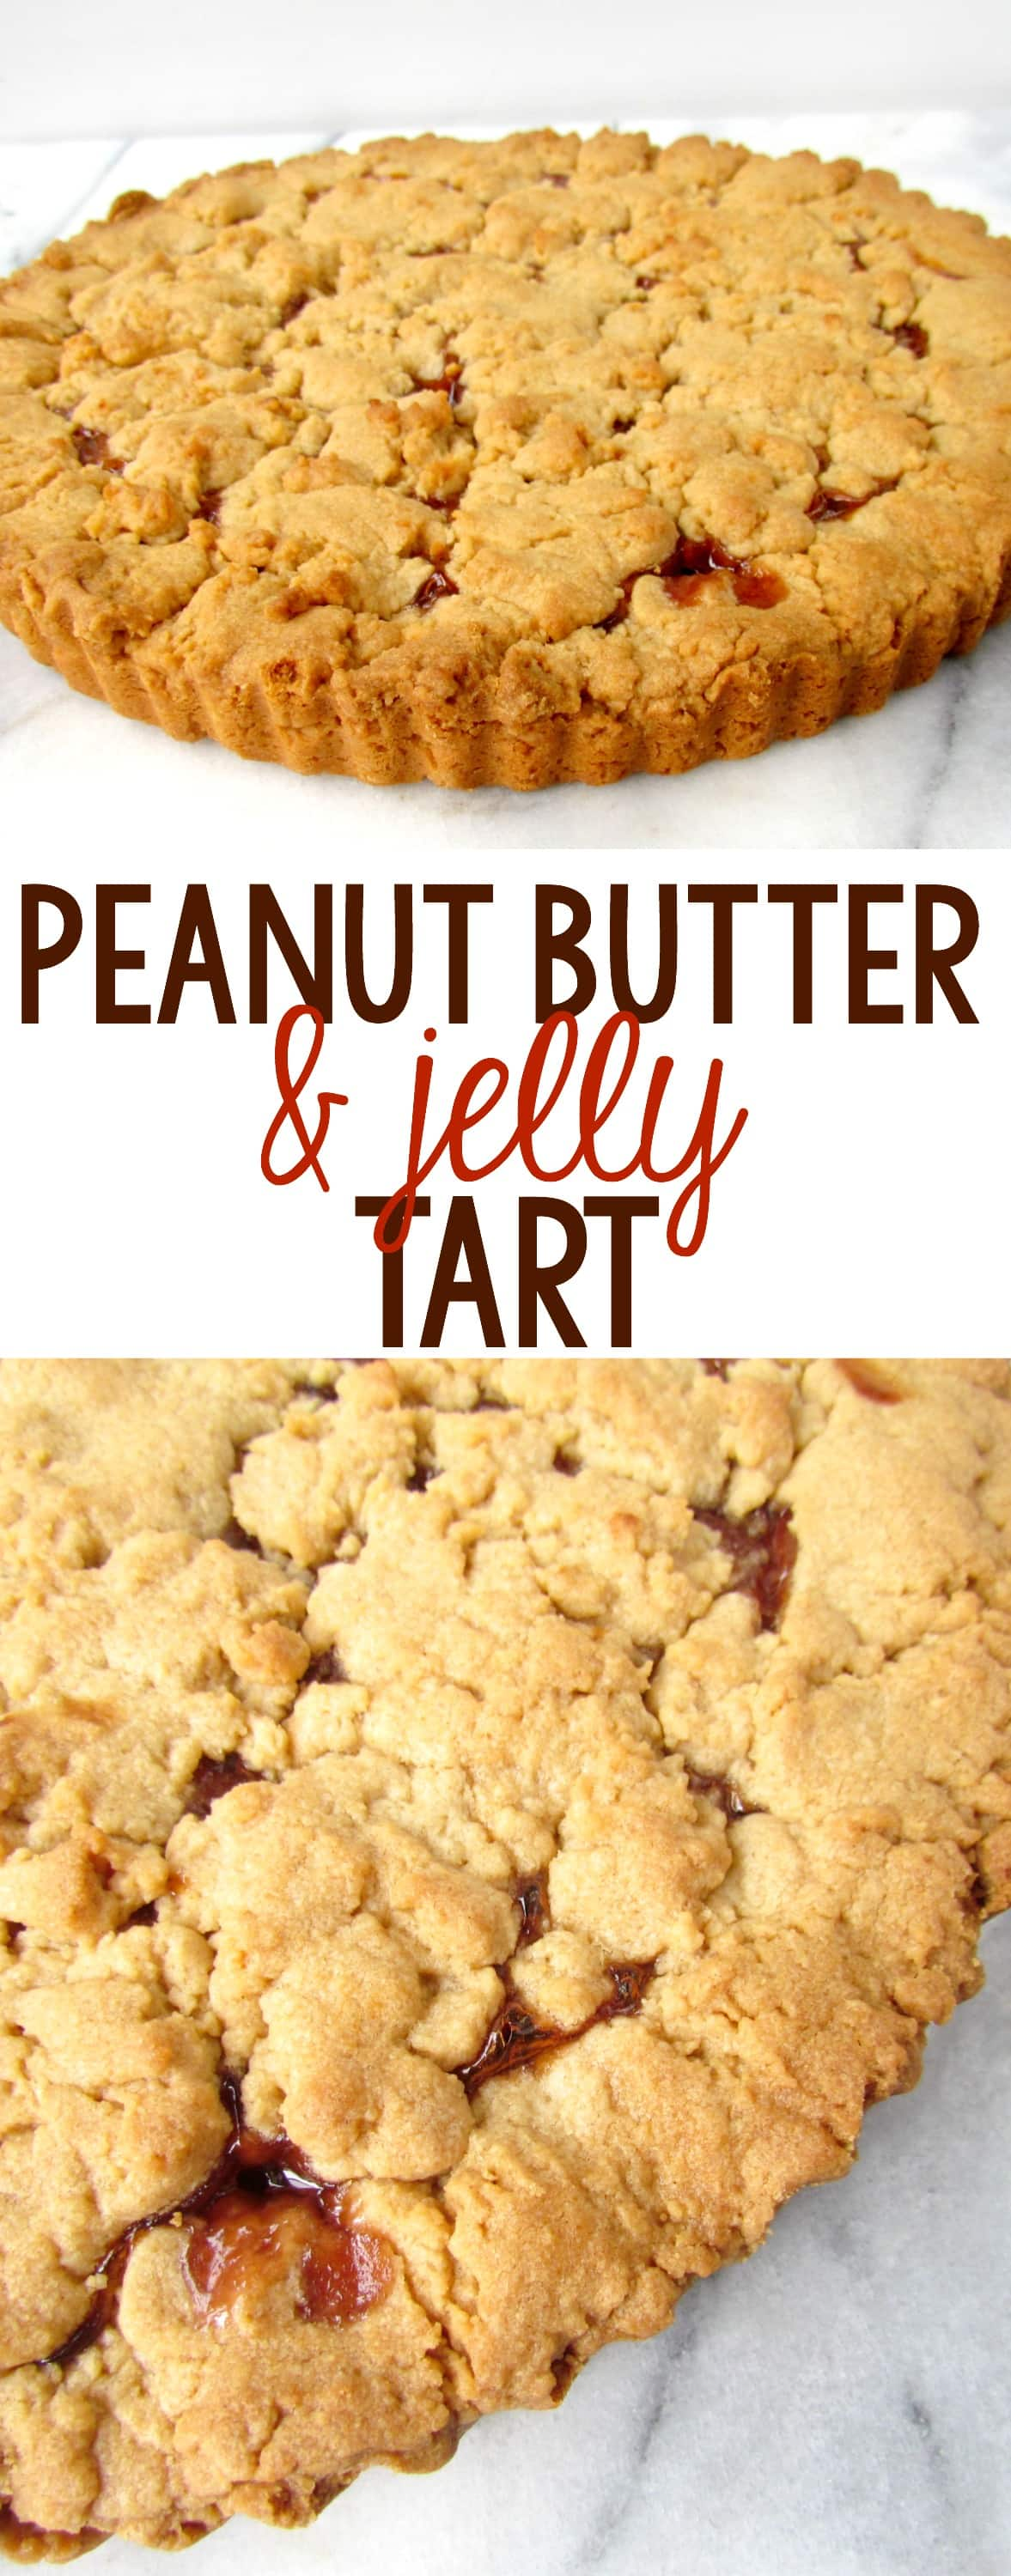 This Peanut Butter and Jelly Tart is the BEST pie! It's a huge peanut butter cookie recipe filled with jelly. PB&J lovers will love this pie!